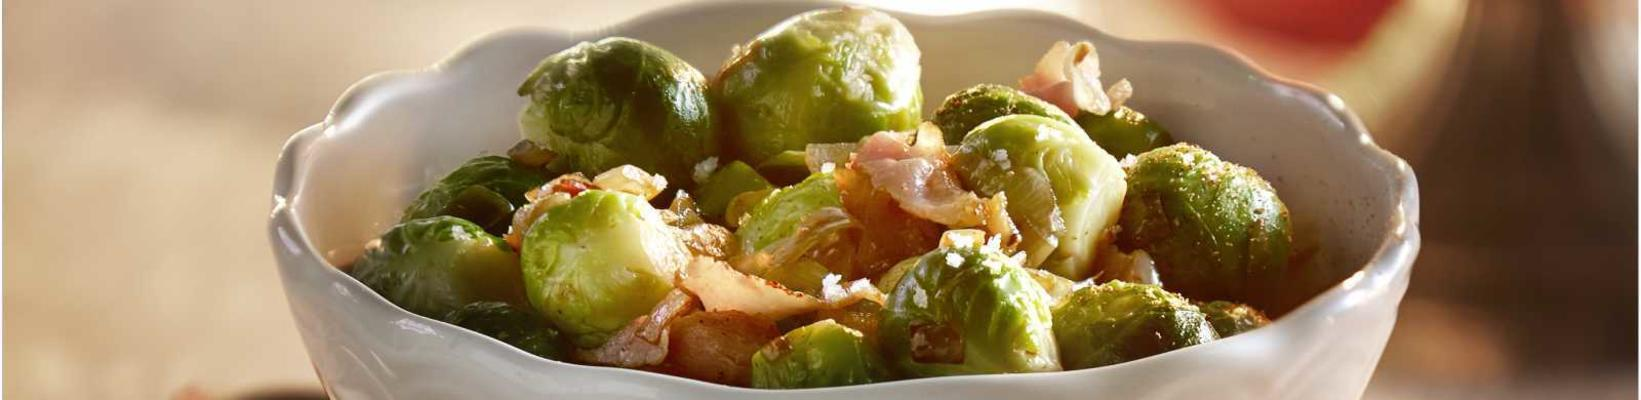 Brussels sprouts with shallots and bacon